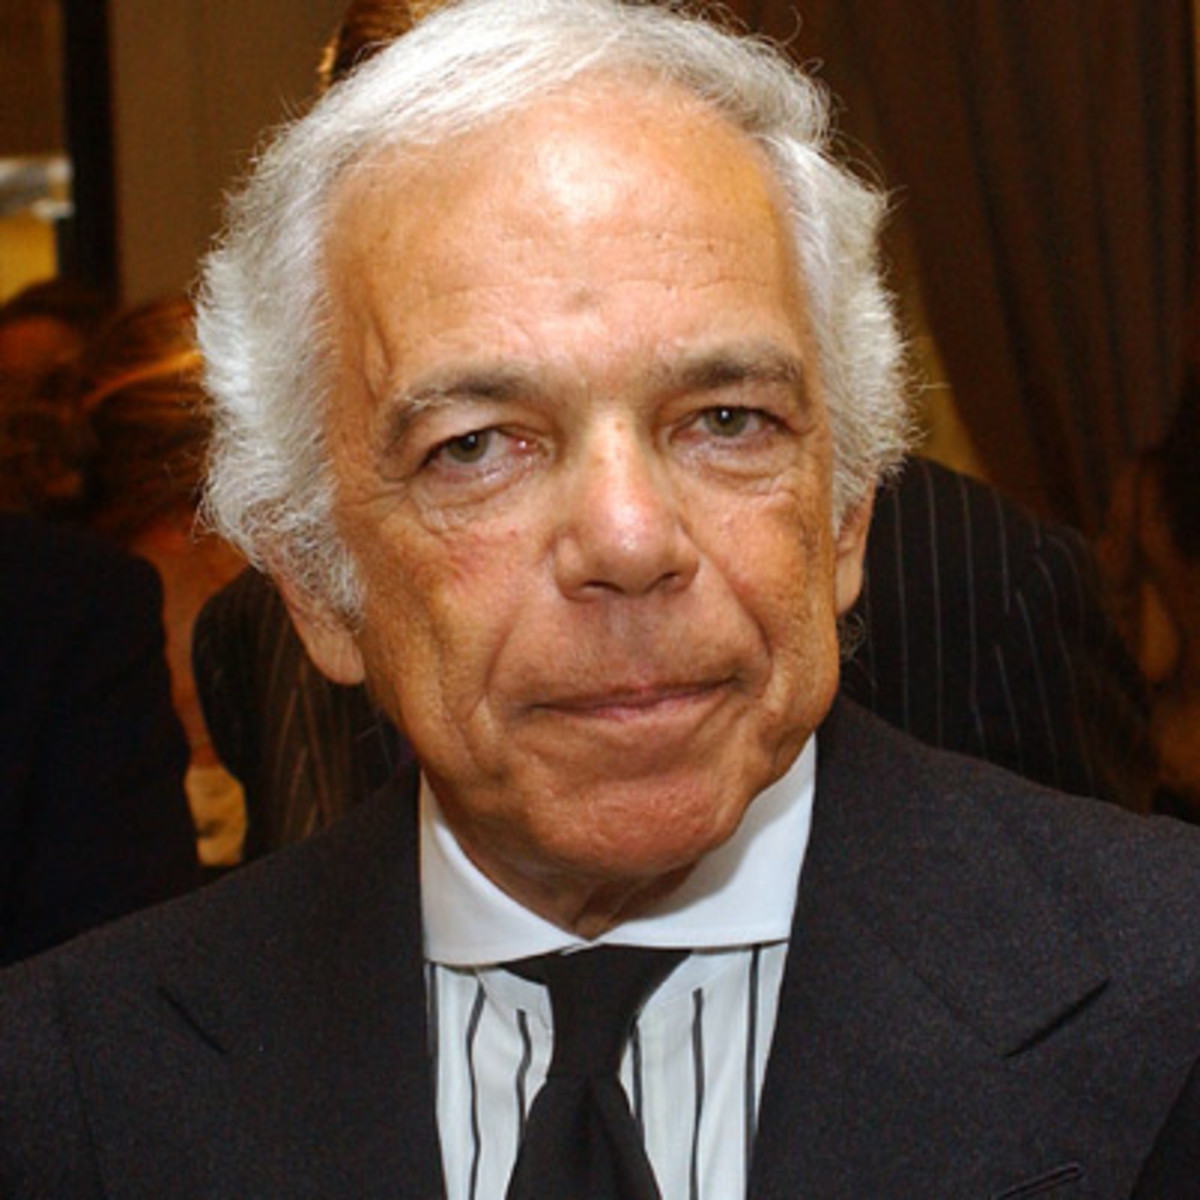 Ralph Lauren - Style, Wife & Education - Biography on ralph lauren home furniture beach, ralph lauren home furnishings, ralph lauren home style, ralph lauren home interiors,